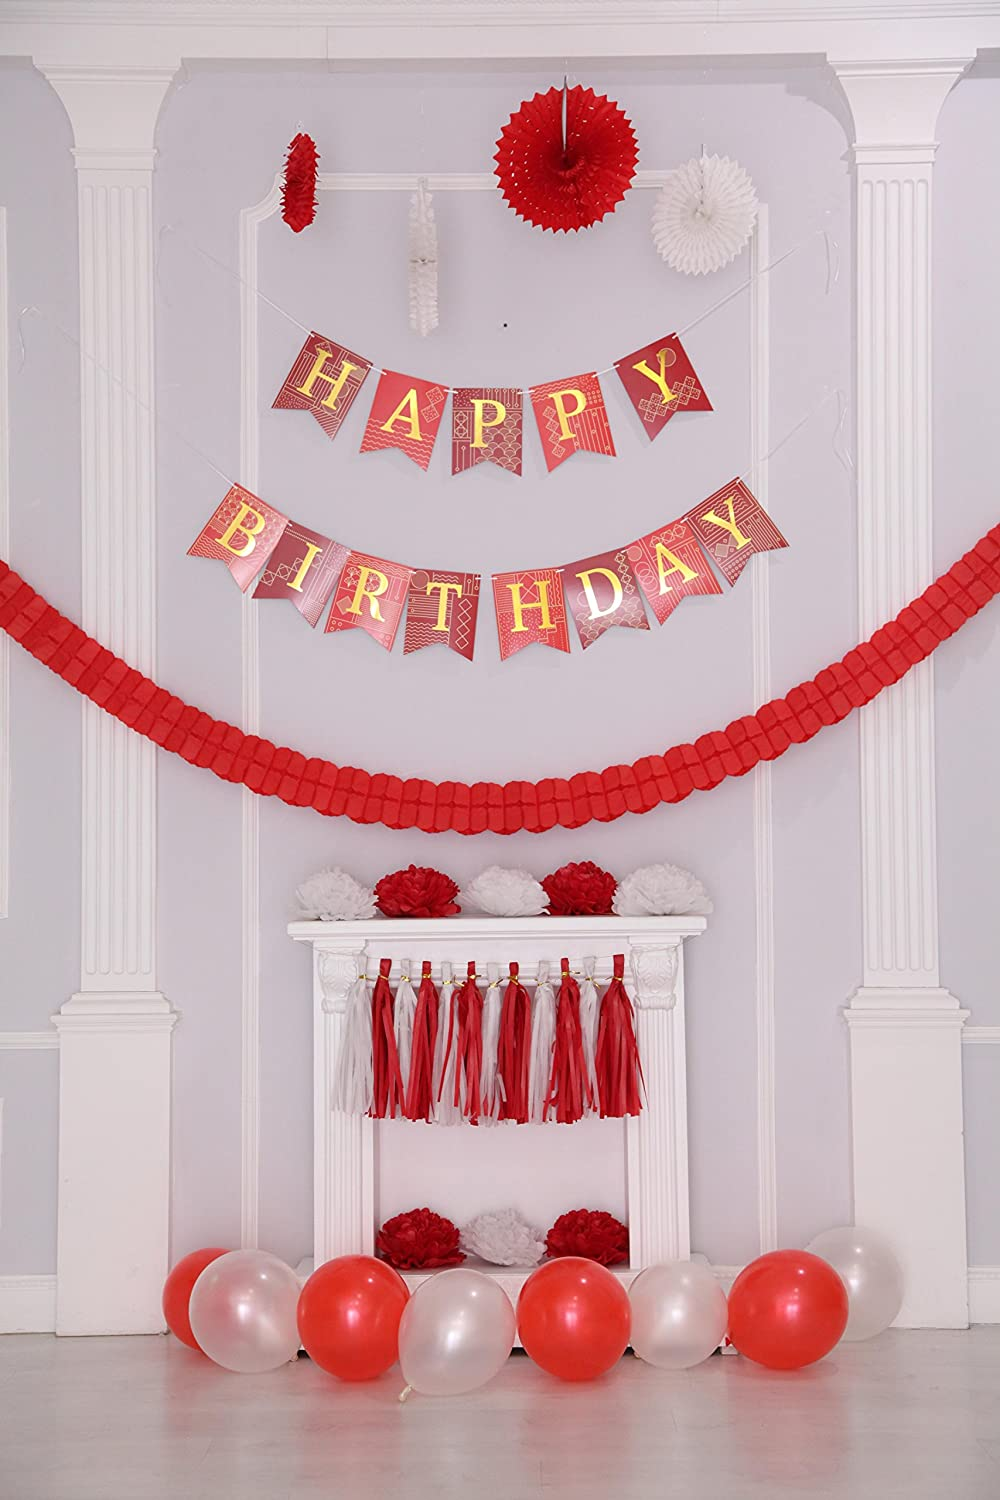 Paper Garland Pom Pom Flowers Balloons 46 pcs Red and White Birthday Party Decorations Happy Birthday Banner with Gold Foil Letters Tassels for Girl or Boy Party Decorations by Enfy Paper Fans